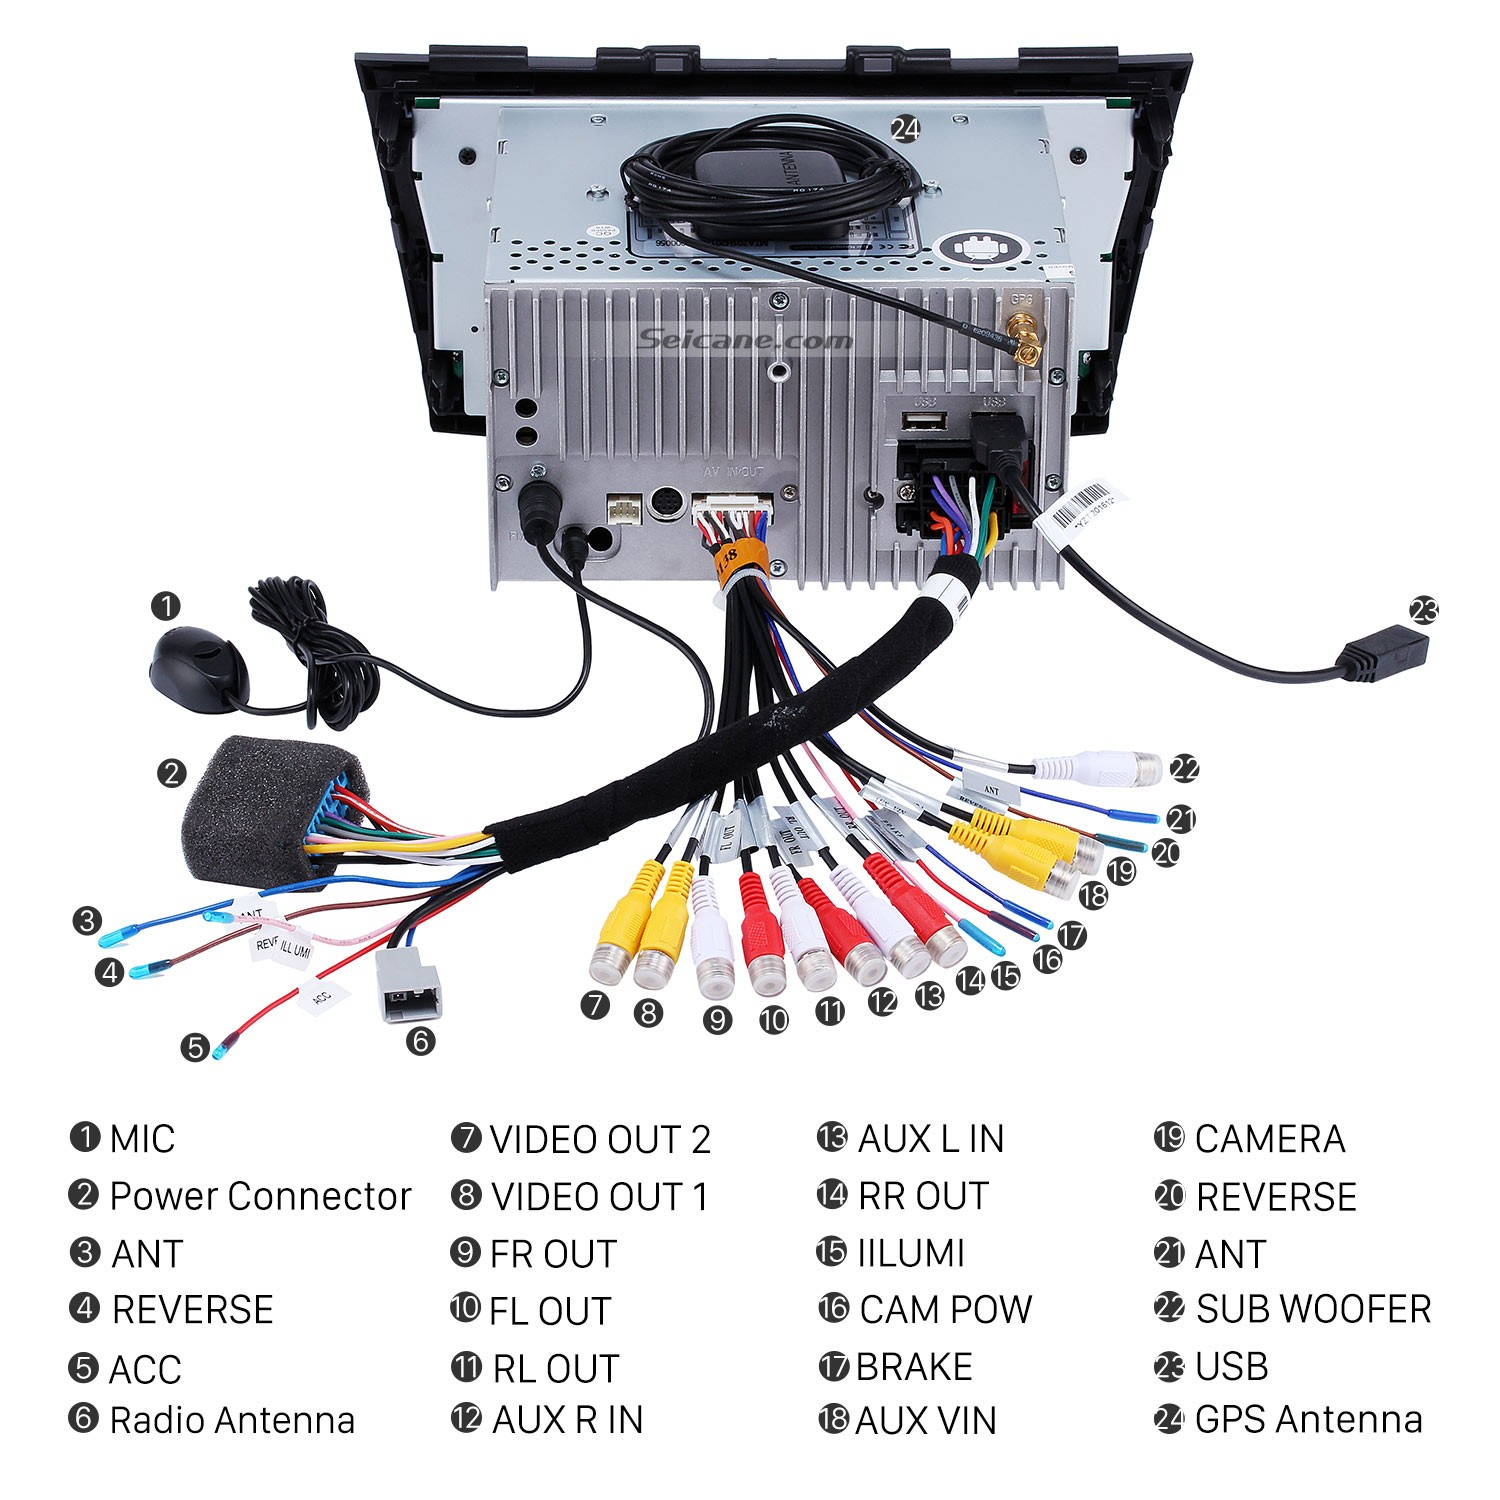 2013 Toyota Venza Oem Radio Wiring Harness Diagram Moreover Car ...